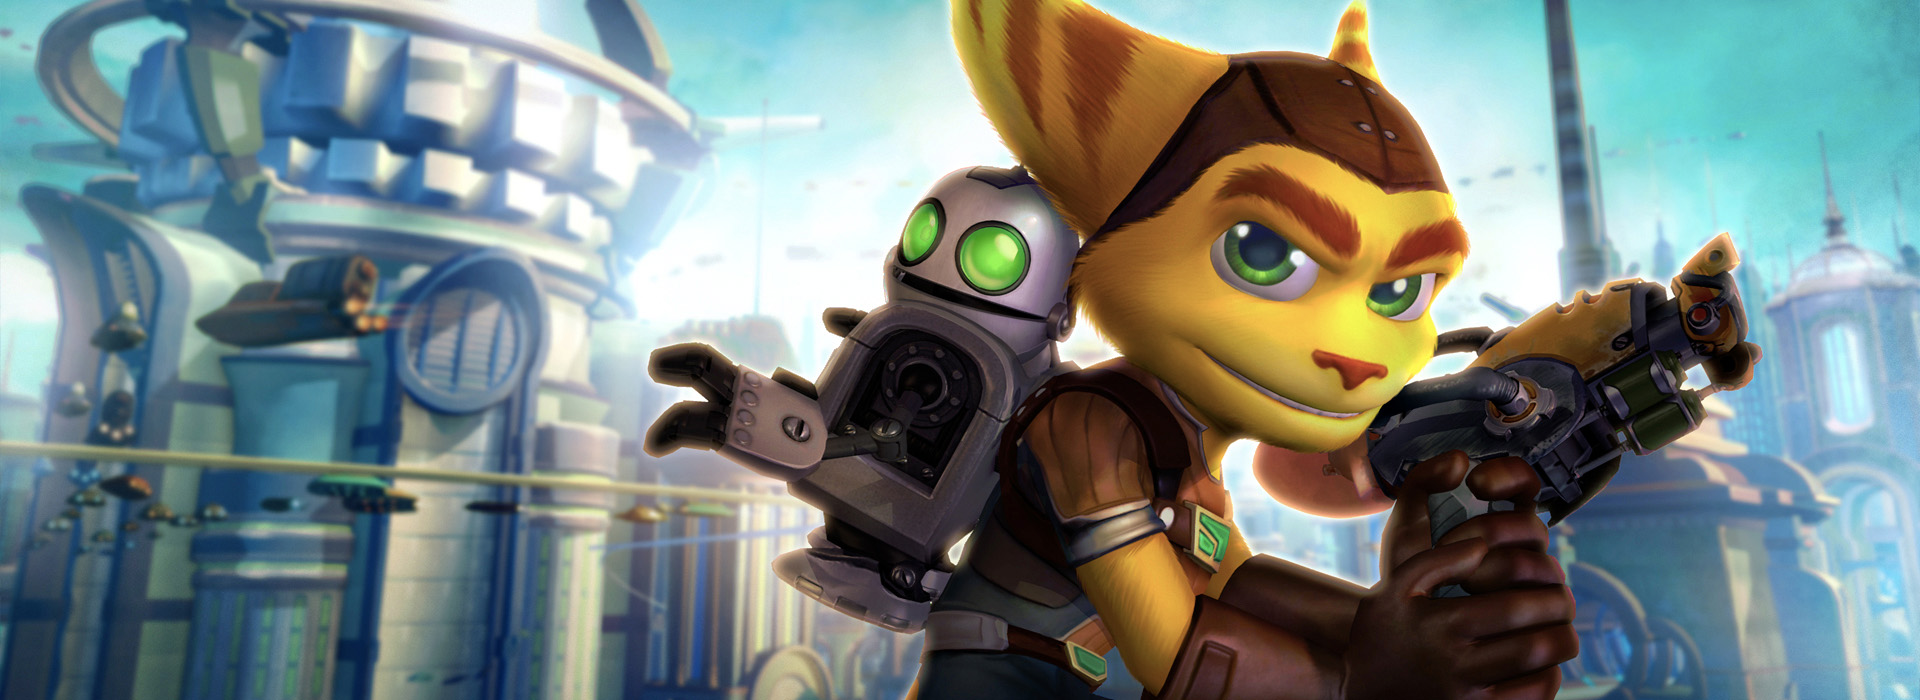 Ratchet-and-Clank-Slide